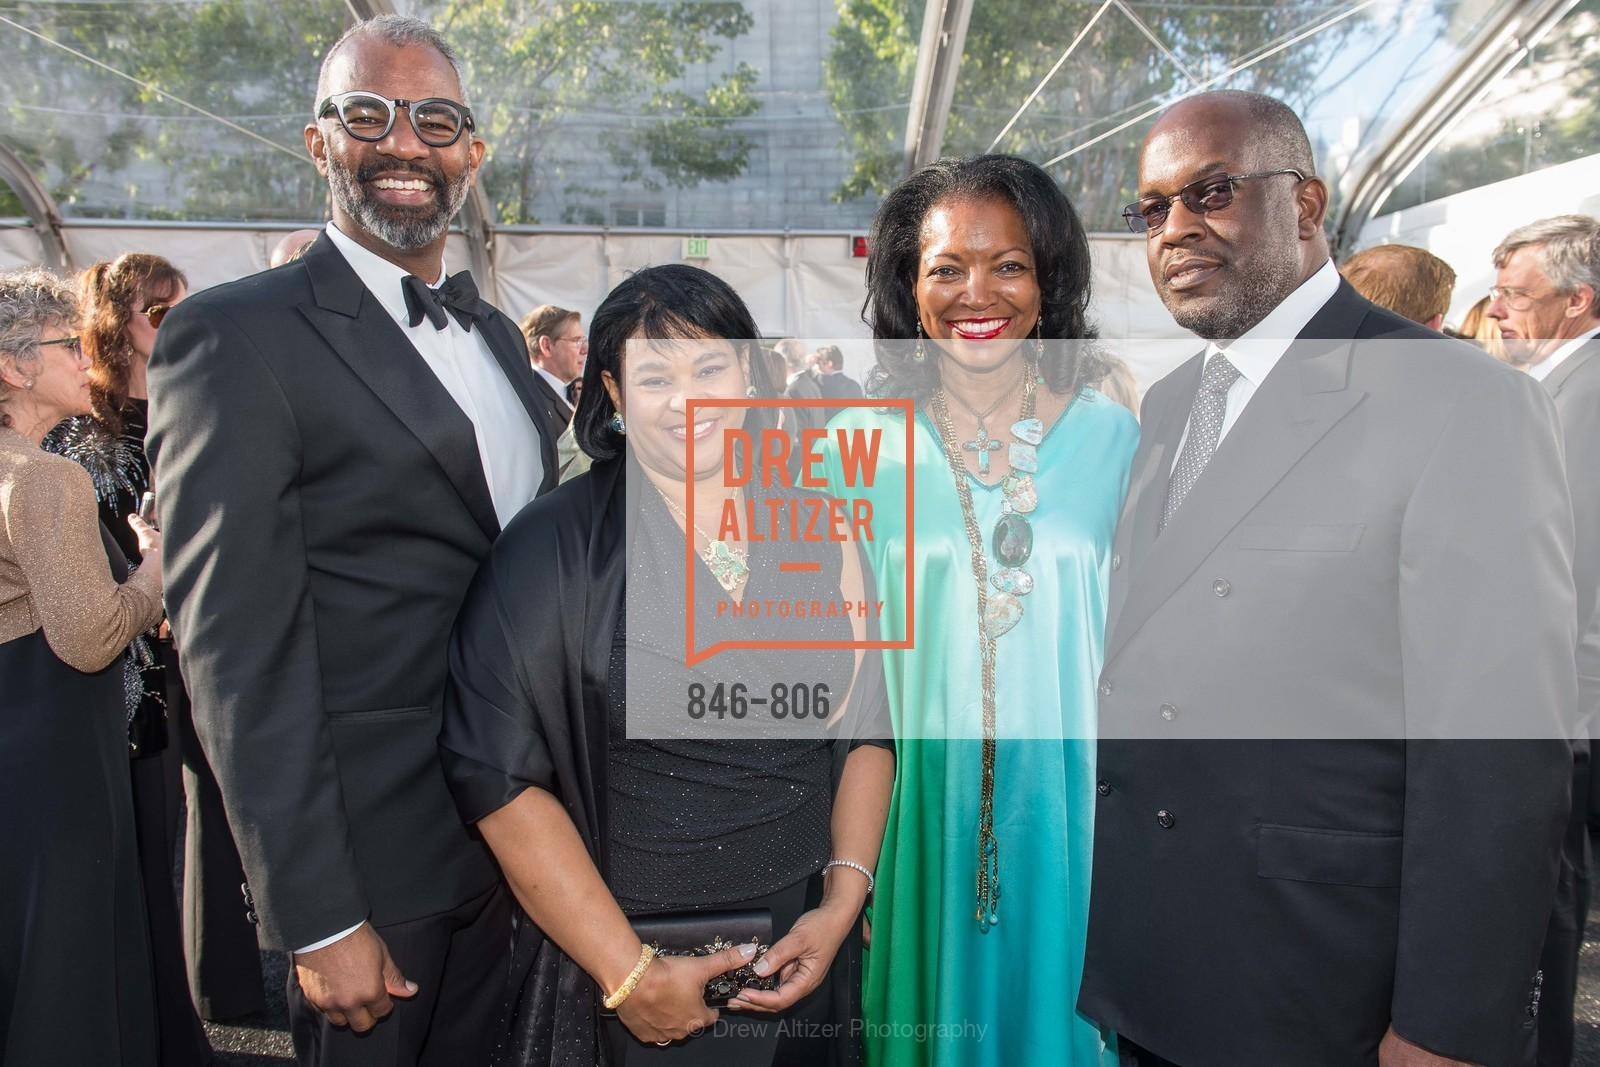 Dr. Tony Cole, Robyn Coles, Denise Bradley Tyson, Bernard Tyson, A.C.T. Gala Come Get Stranded, US, April 26th, 2015,Drew Altizer, Drew Altizer Photography, full-service agency, private events, San Francisco photographer, photographer california